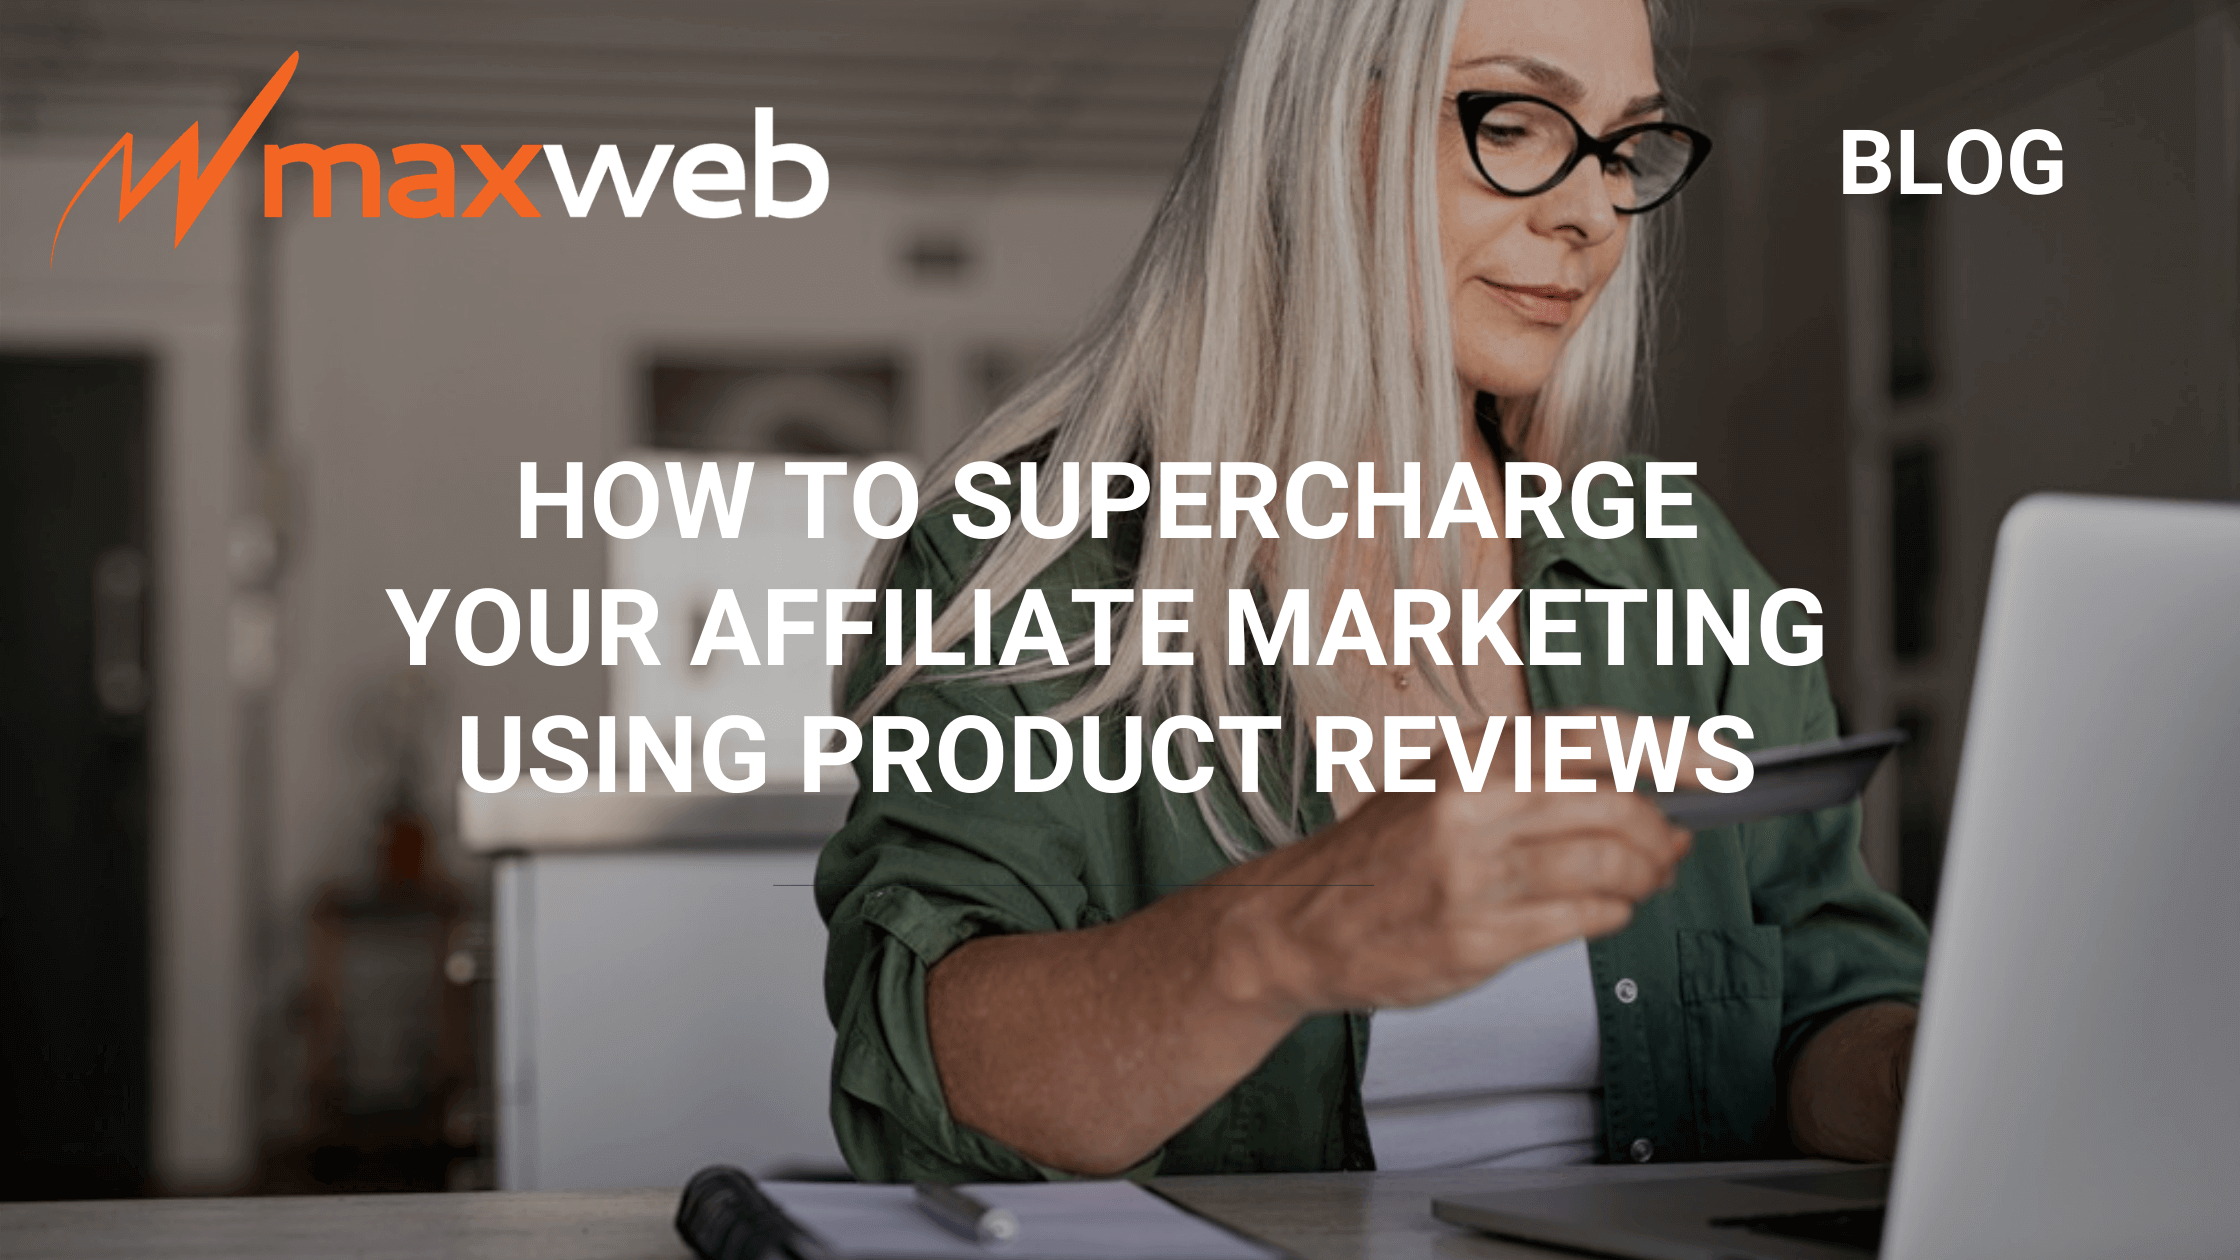 How to Supercharge Your Affiliate Marketing Using Product Reviews